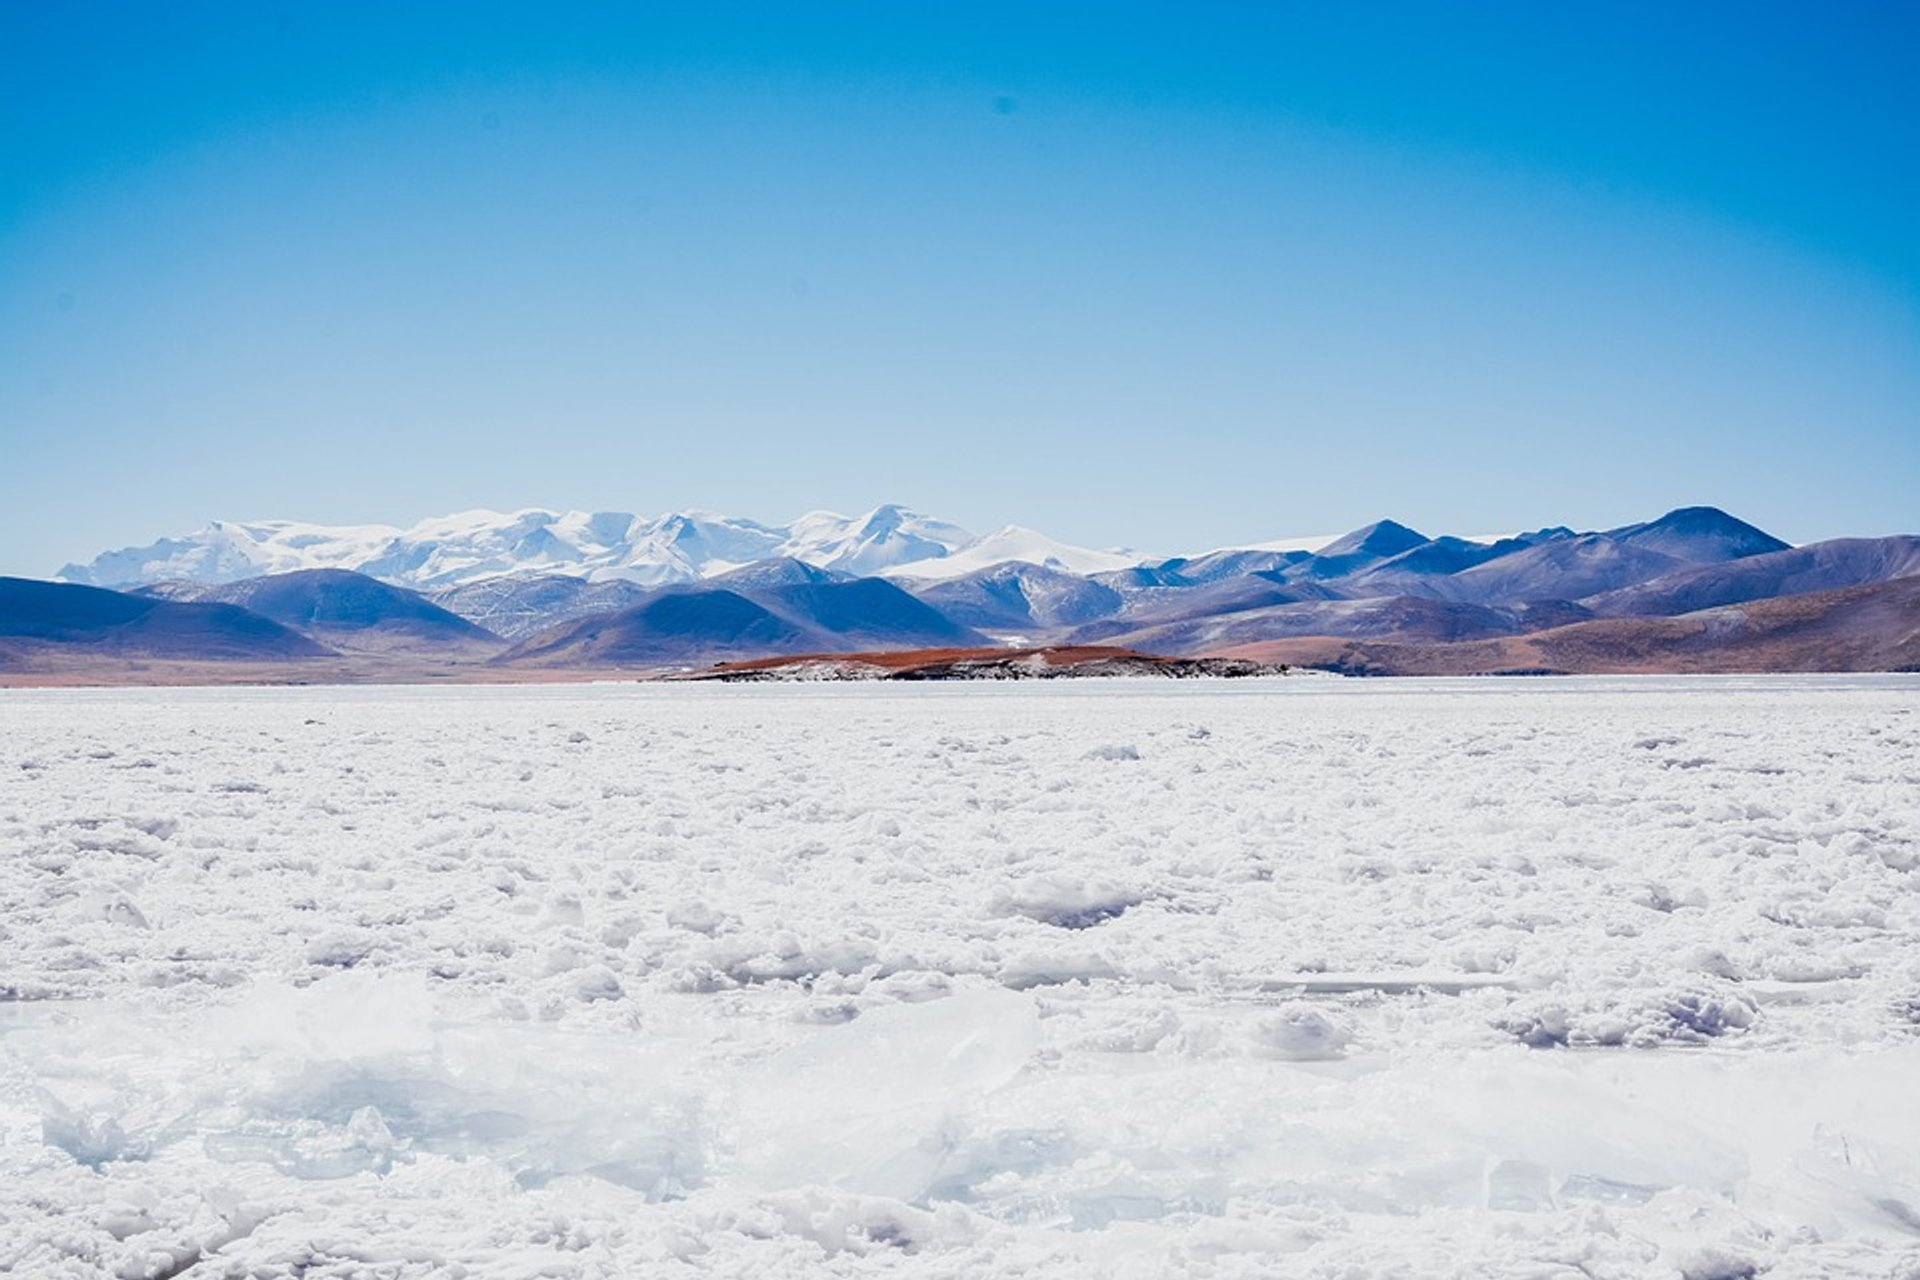 Winter in Tibet 2020 - Best Time